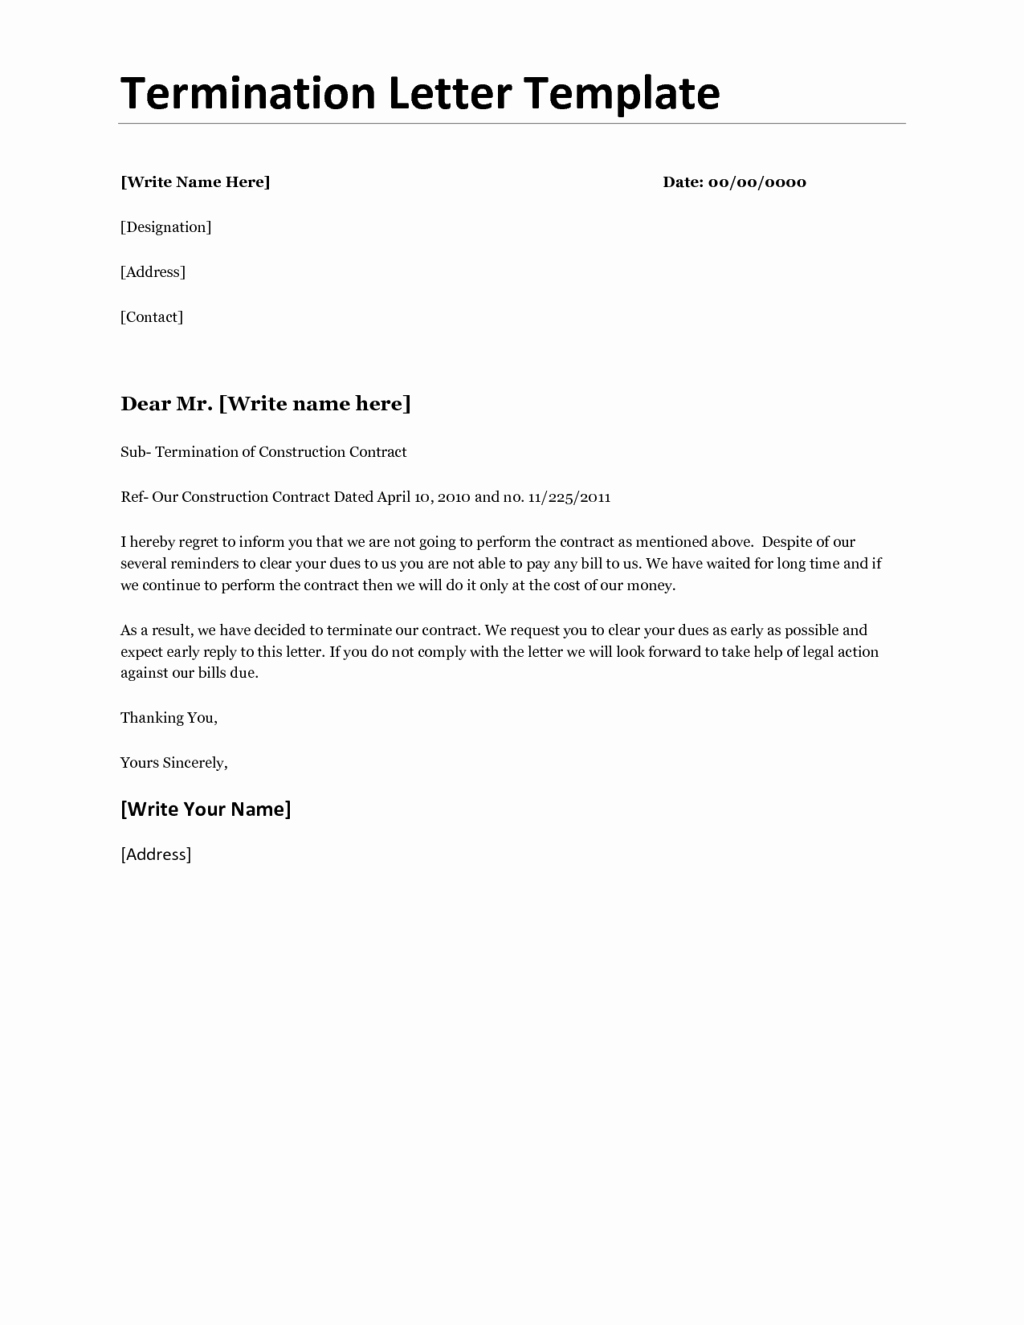 Timeshare Cancellation Letter Sample Luxury Business Contract Termination Letter for Non Renewal